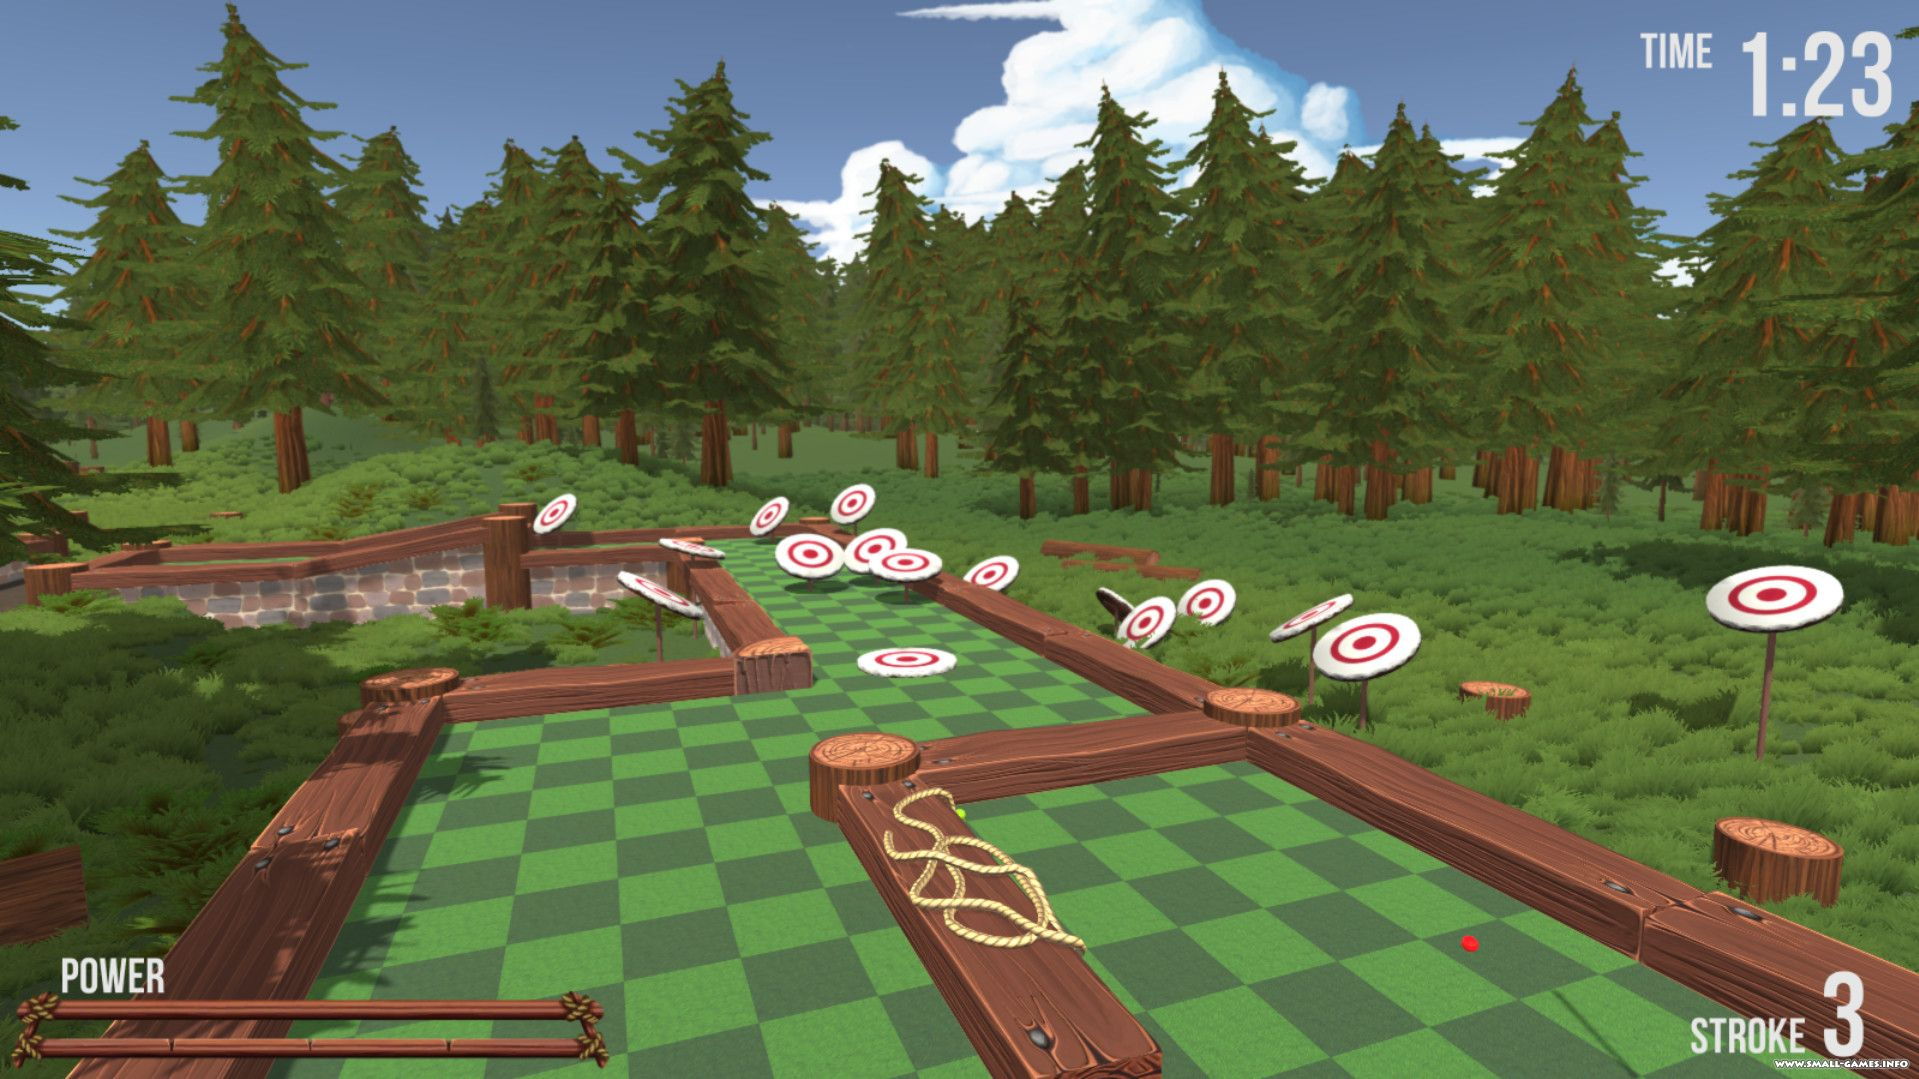 Download golf with friends game free torrent (612 mb)   sport & racing.